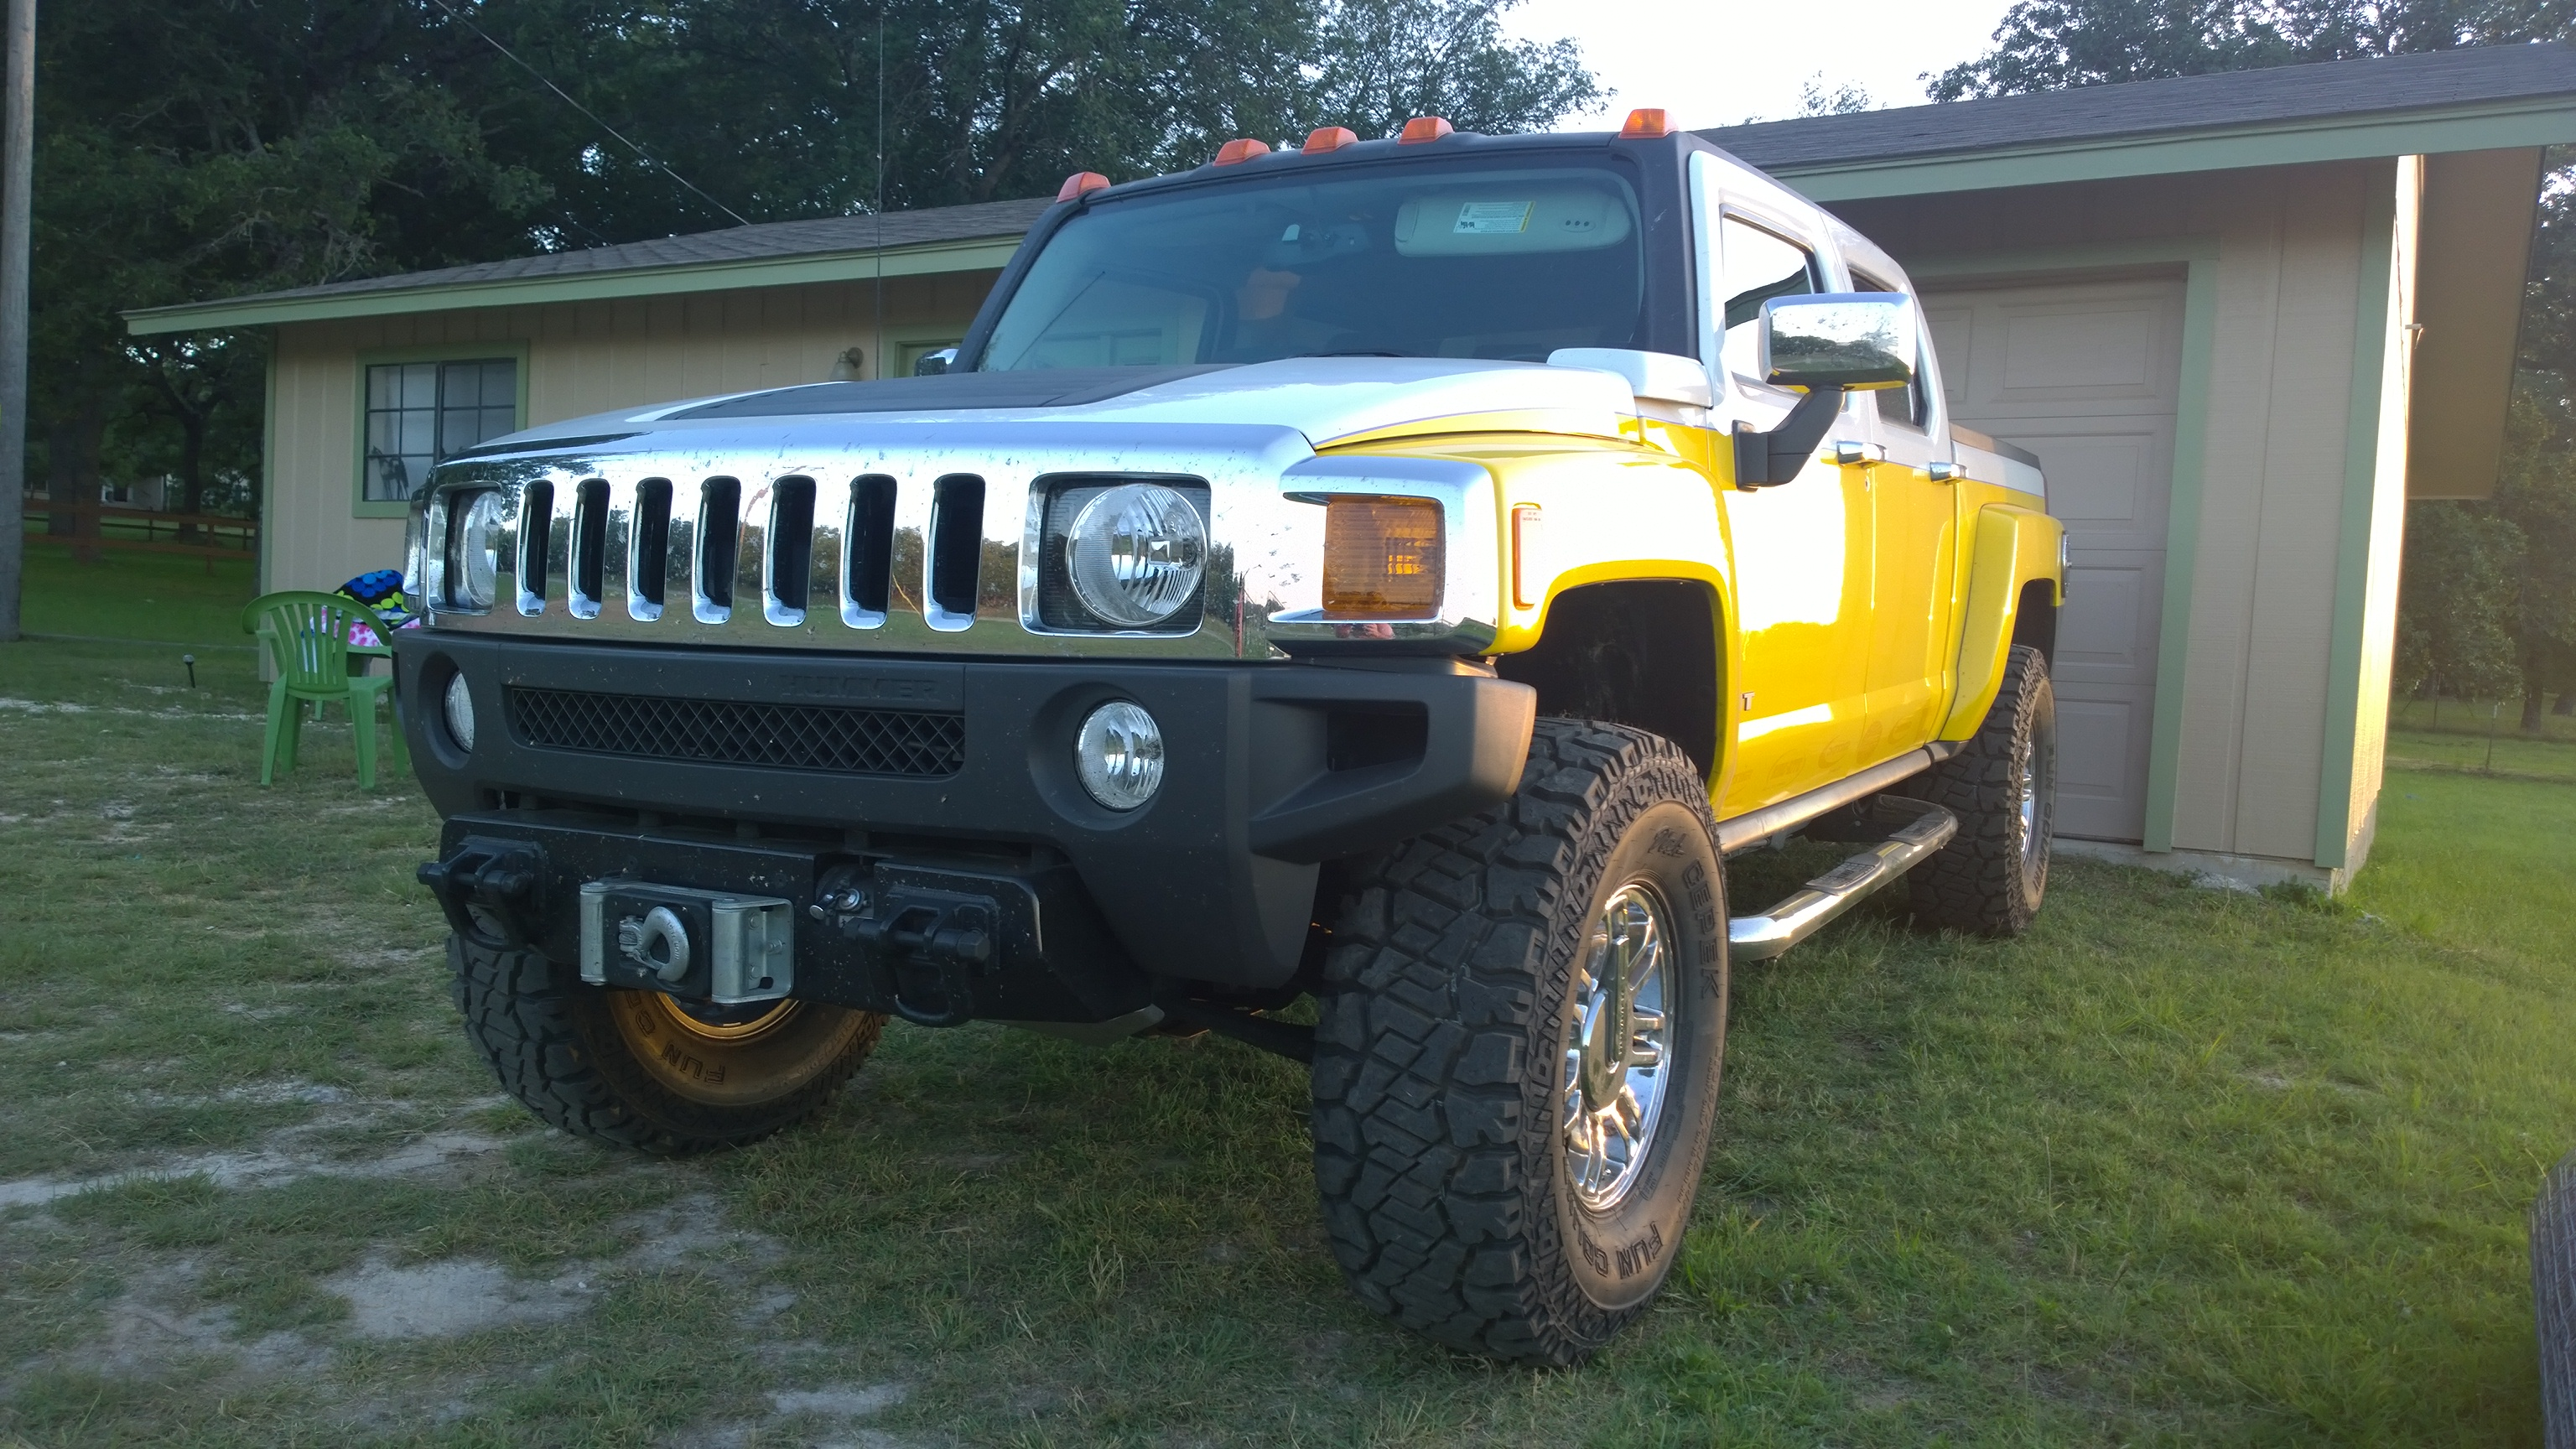 H3T Alpha Daughter s Ride Hummer Forums Enthusiast Forum for